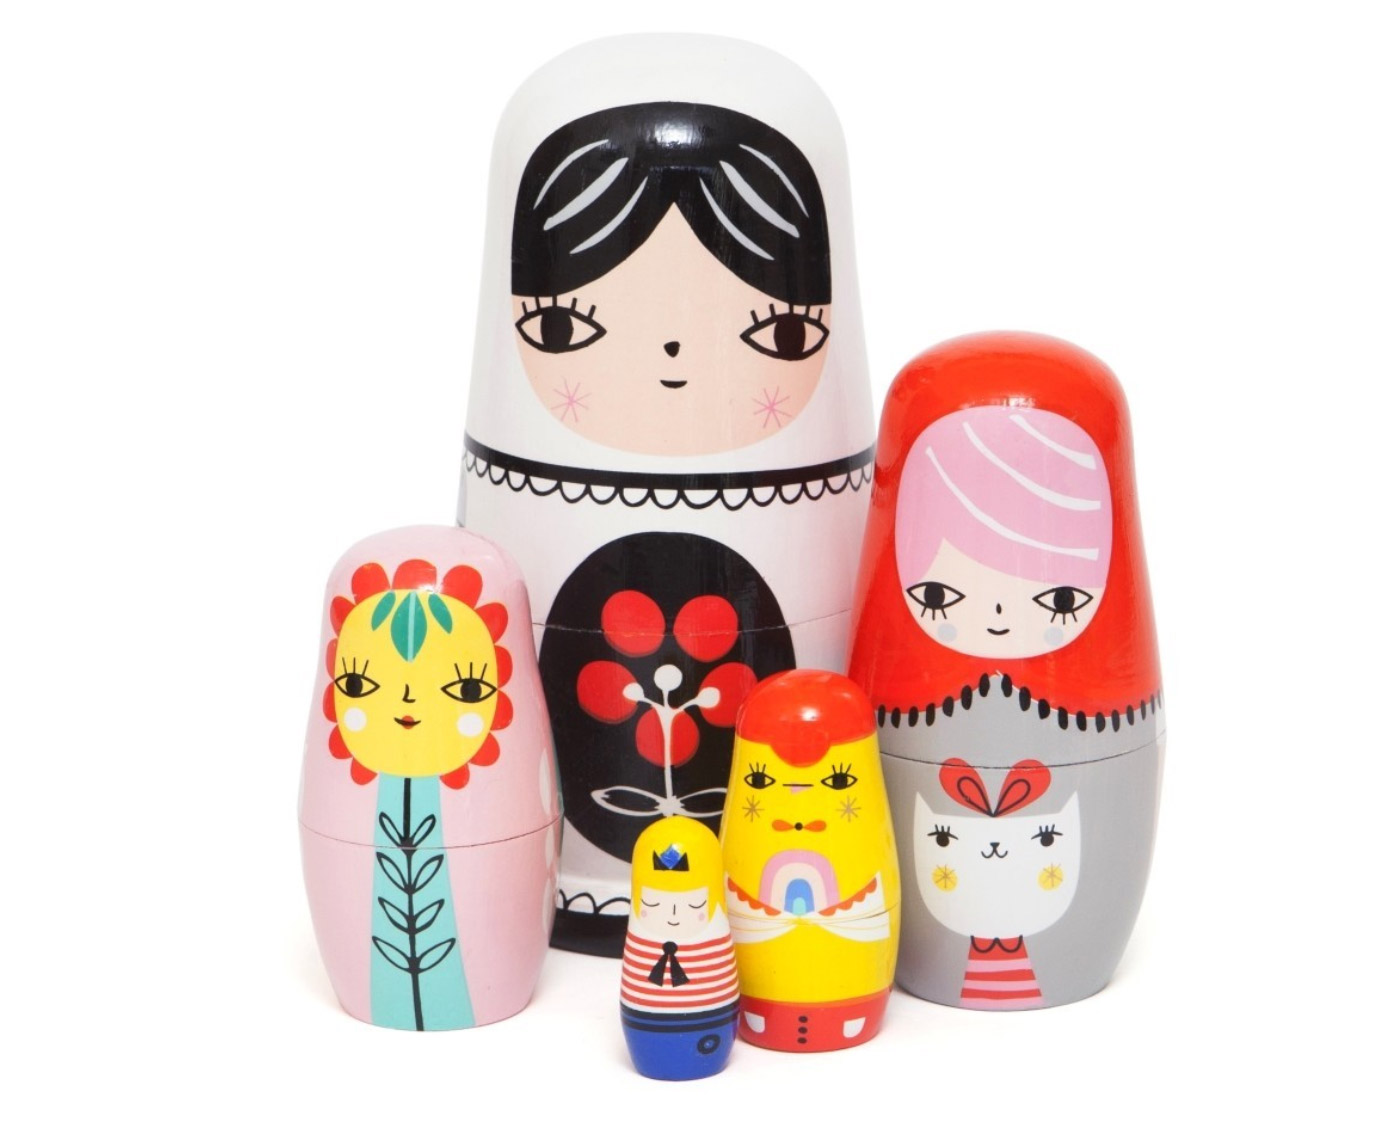 Nesting dolls 'Fleur and Friends' kleur